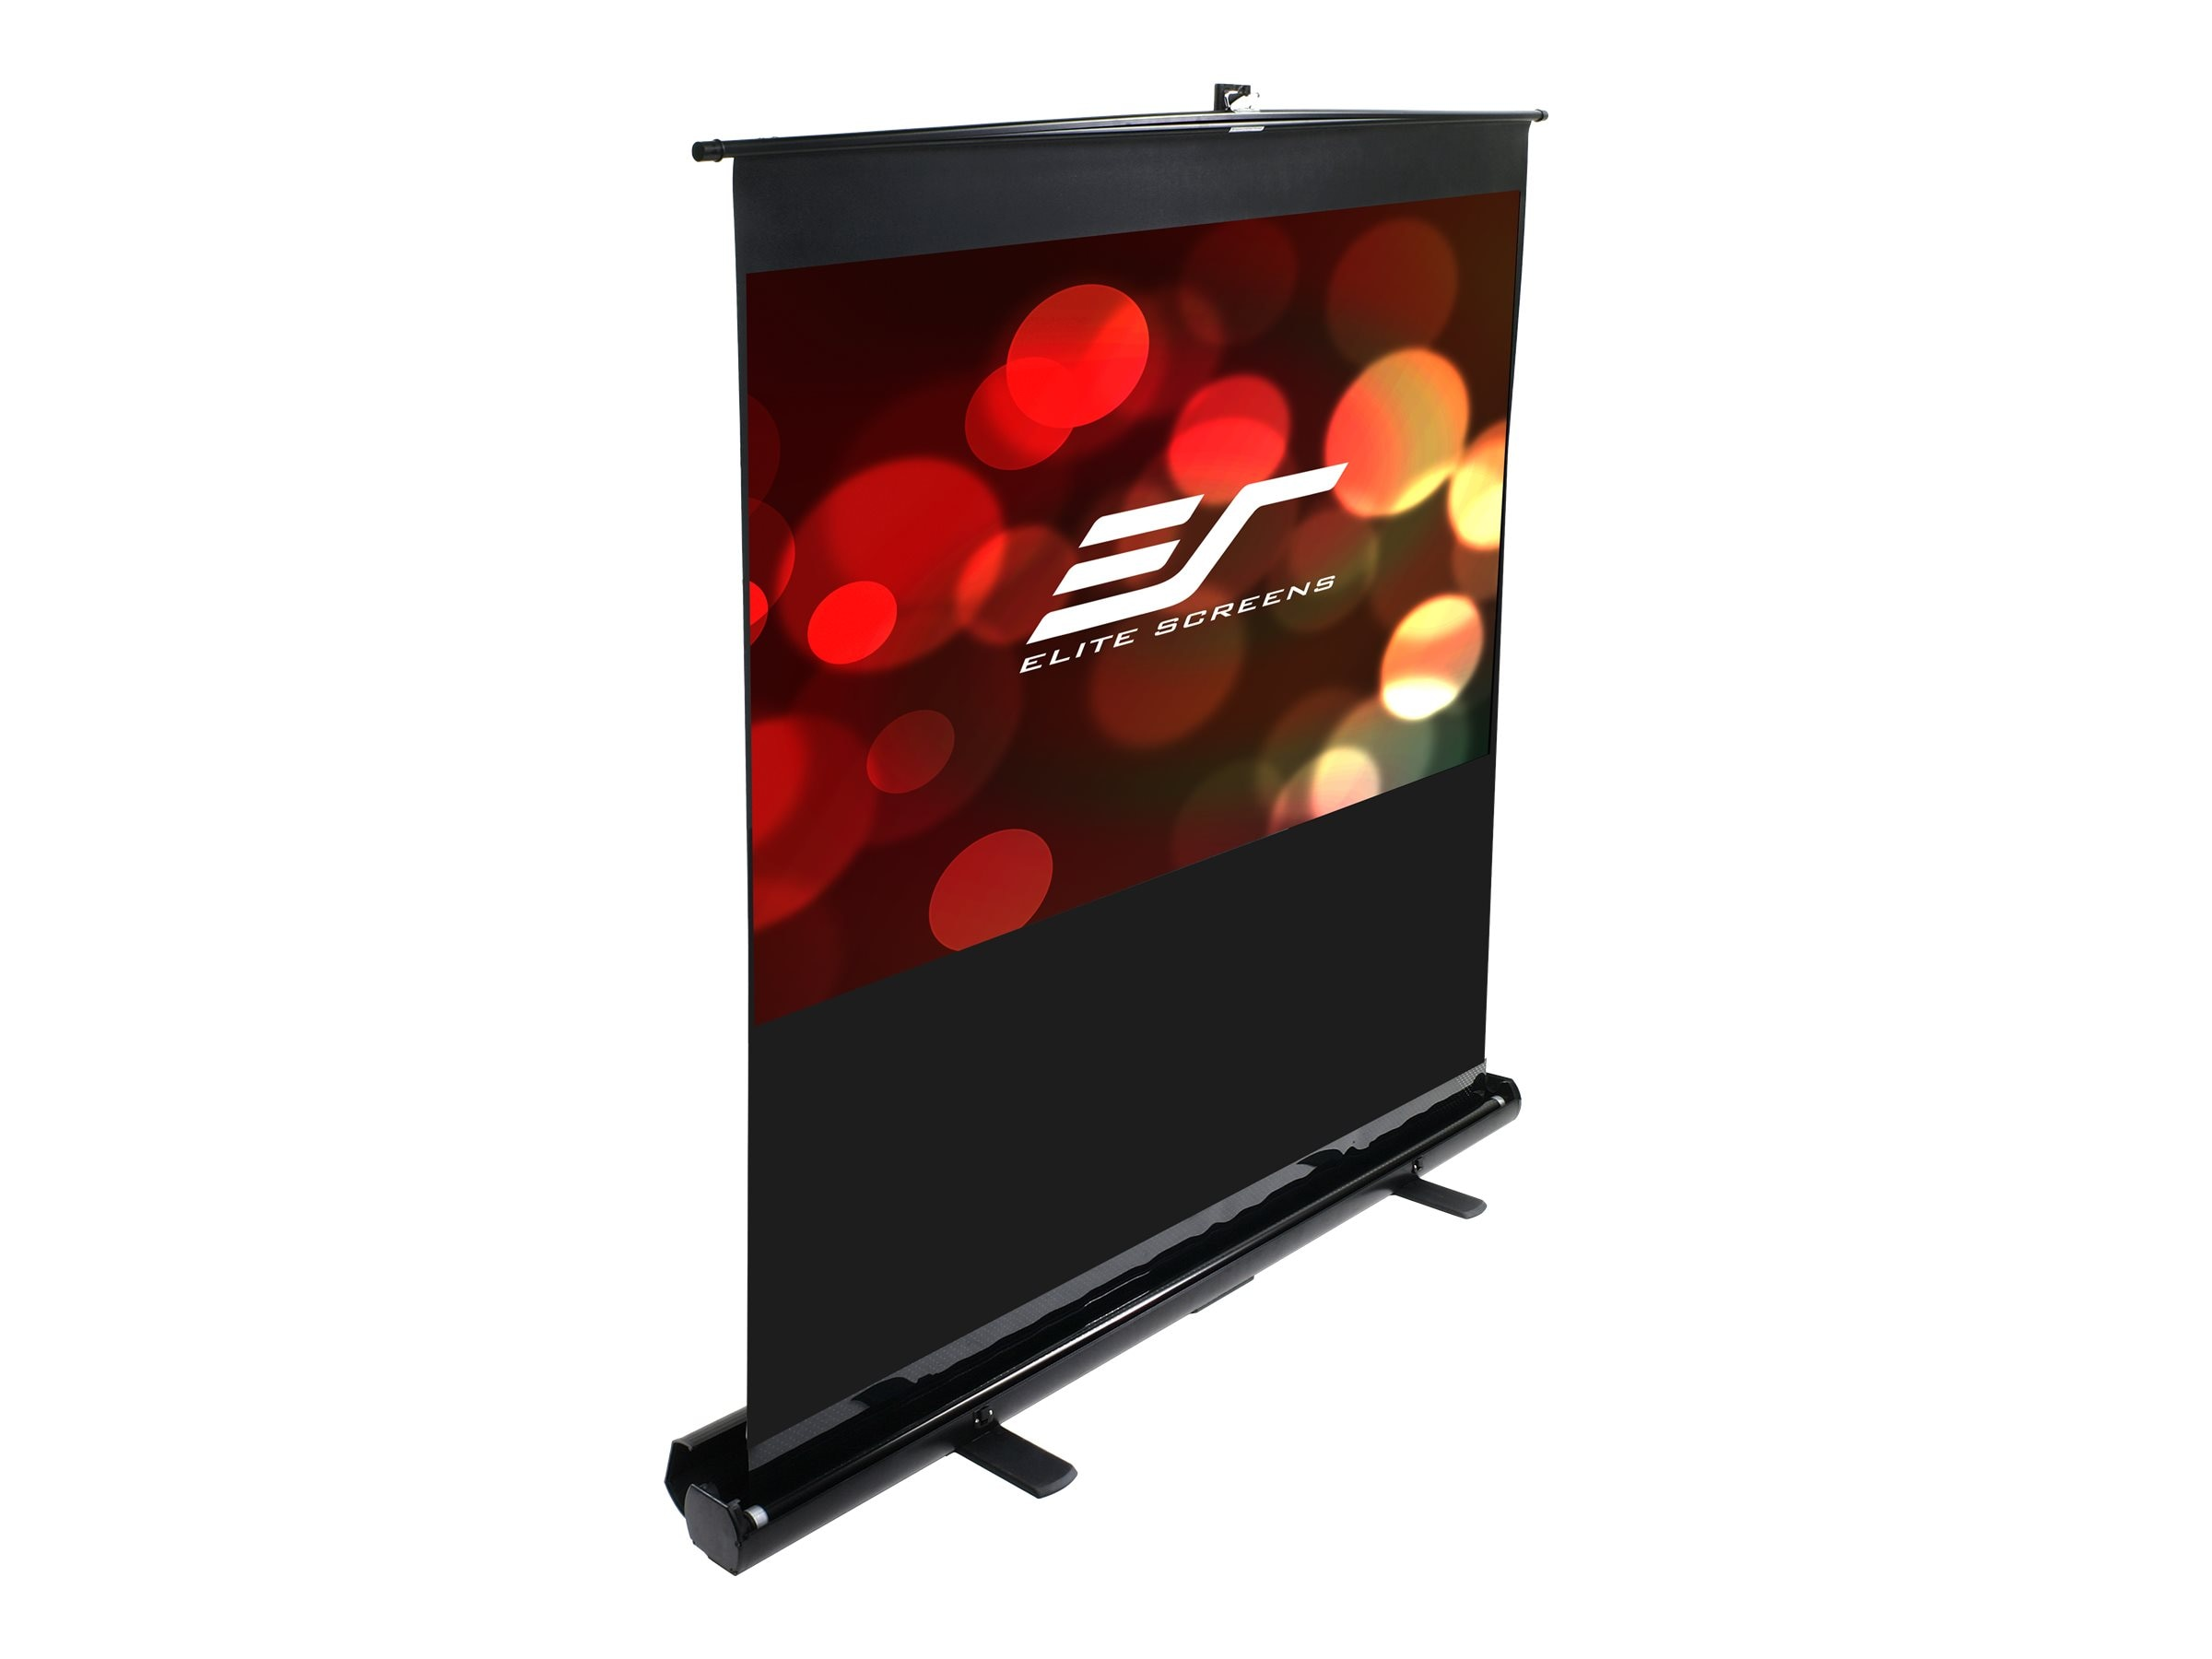 Elite ez-Cinema Series Projection Screen, Matte White, 4:3, 72in, 43x58in, F72NWV, 6056401, Projector Screens